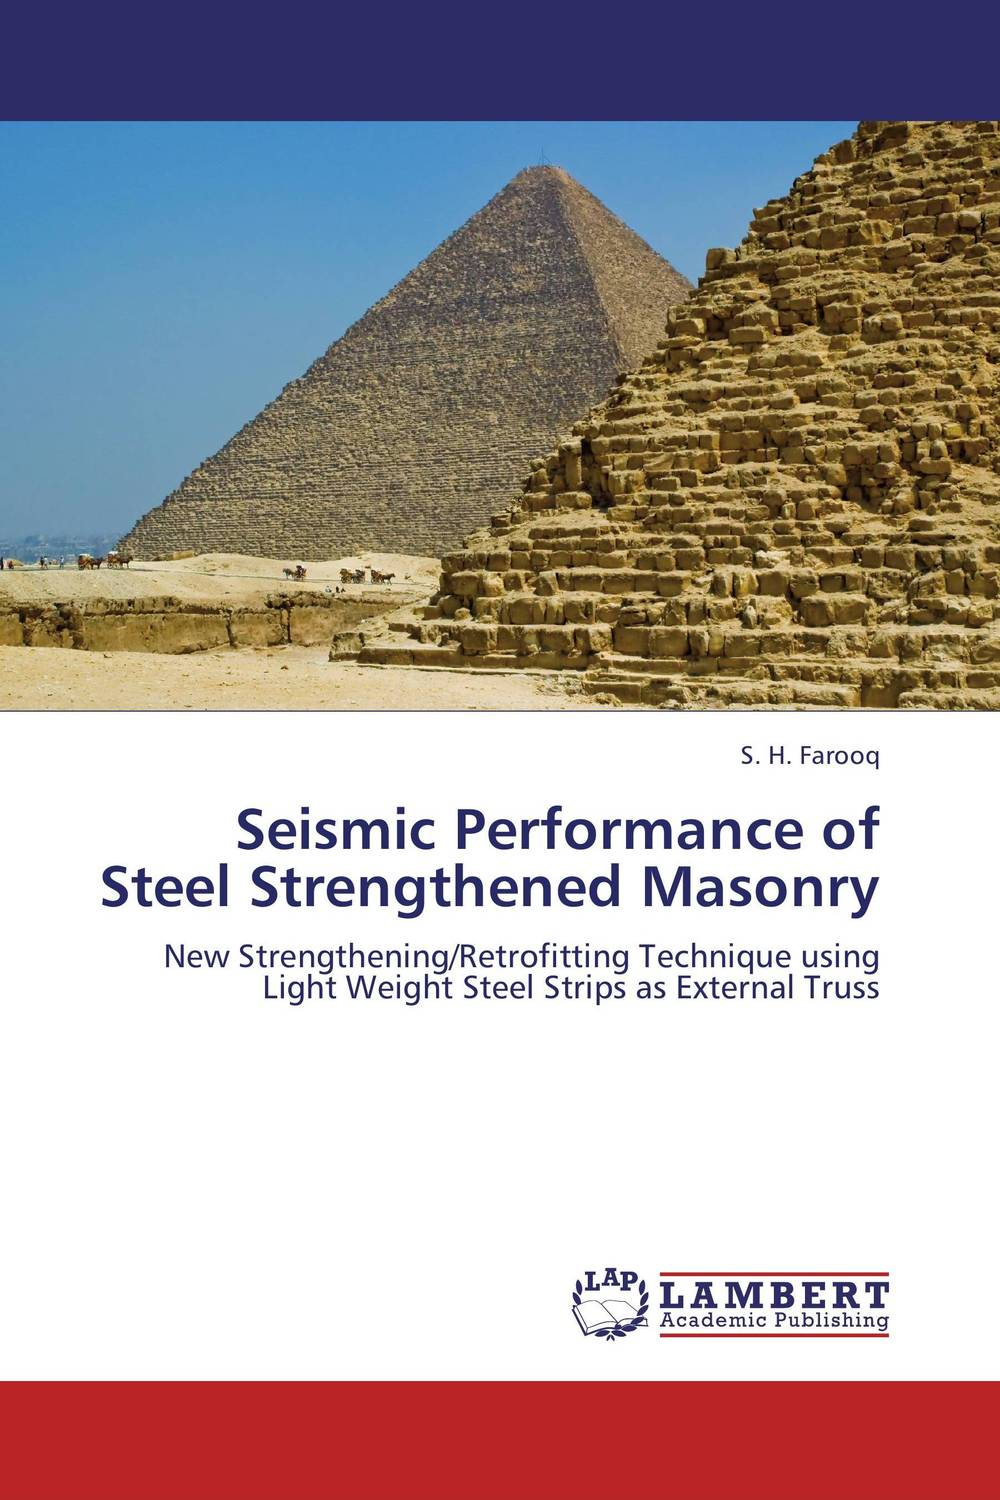 Seismic Performance of Steel Strengthened Masonry stability and ductility of steel structures sdss 99